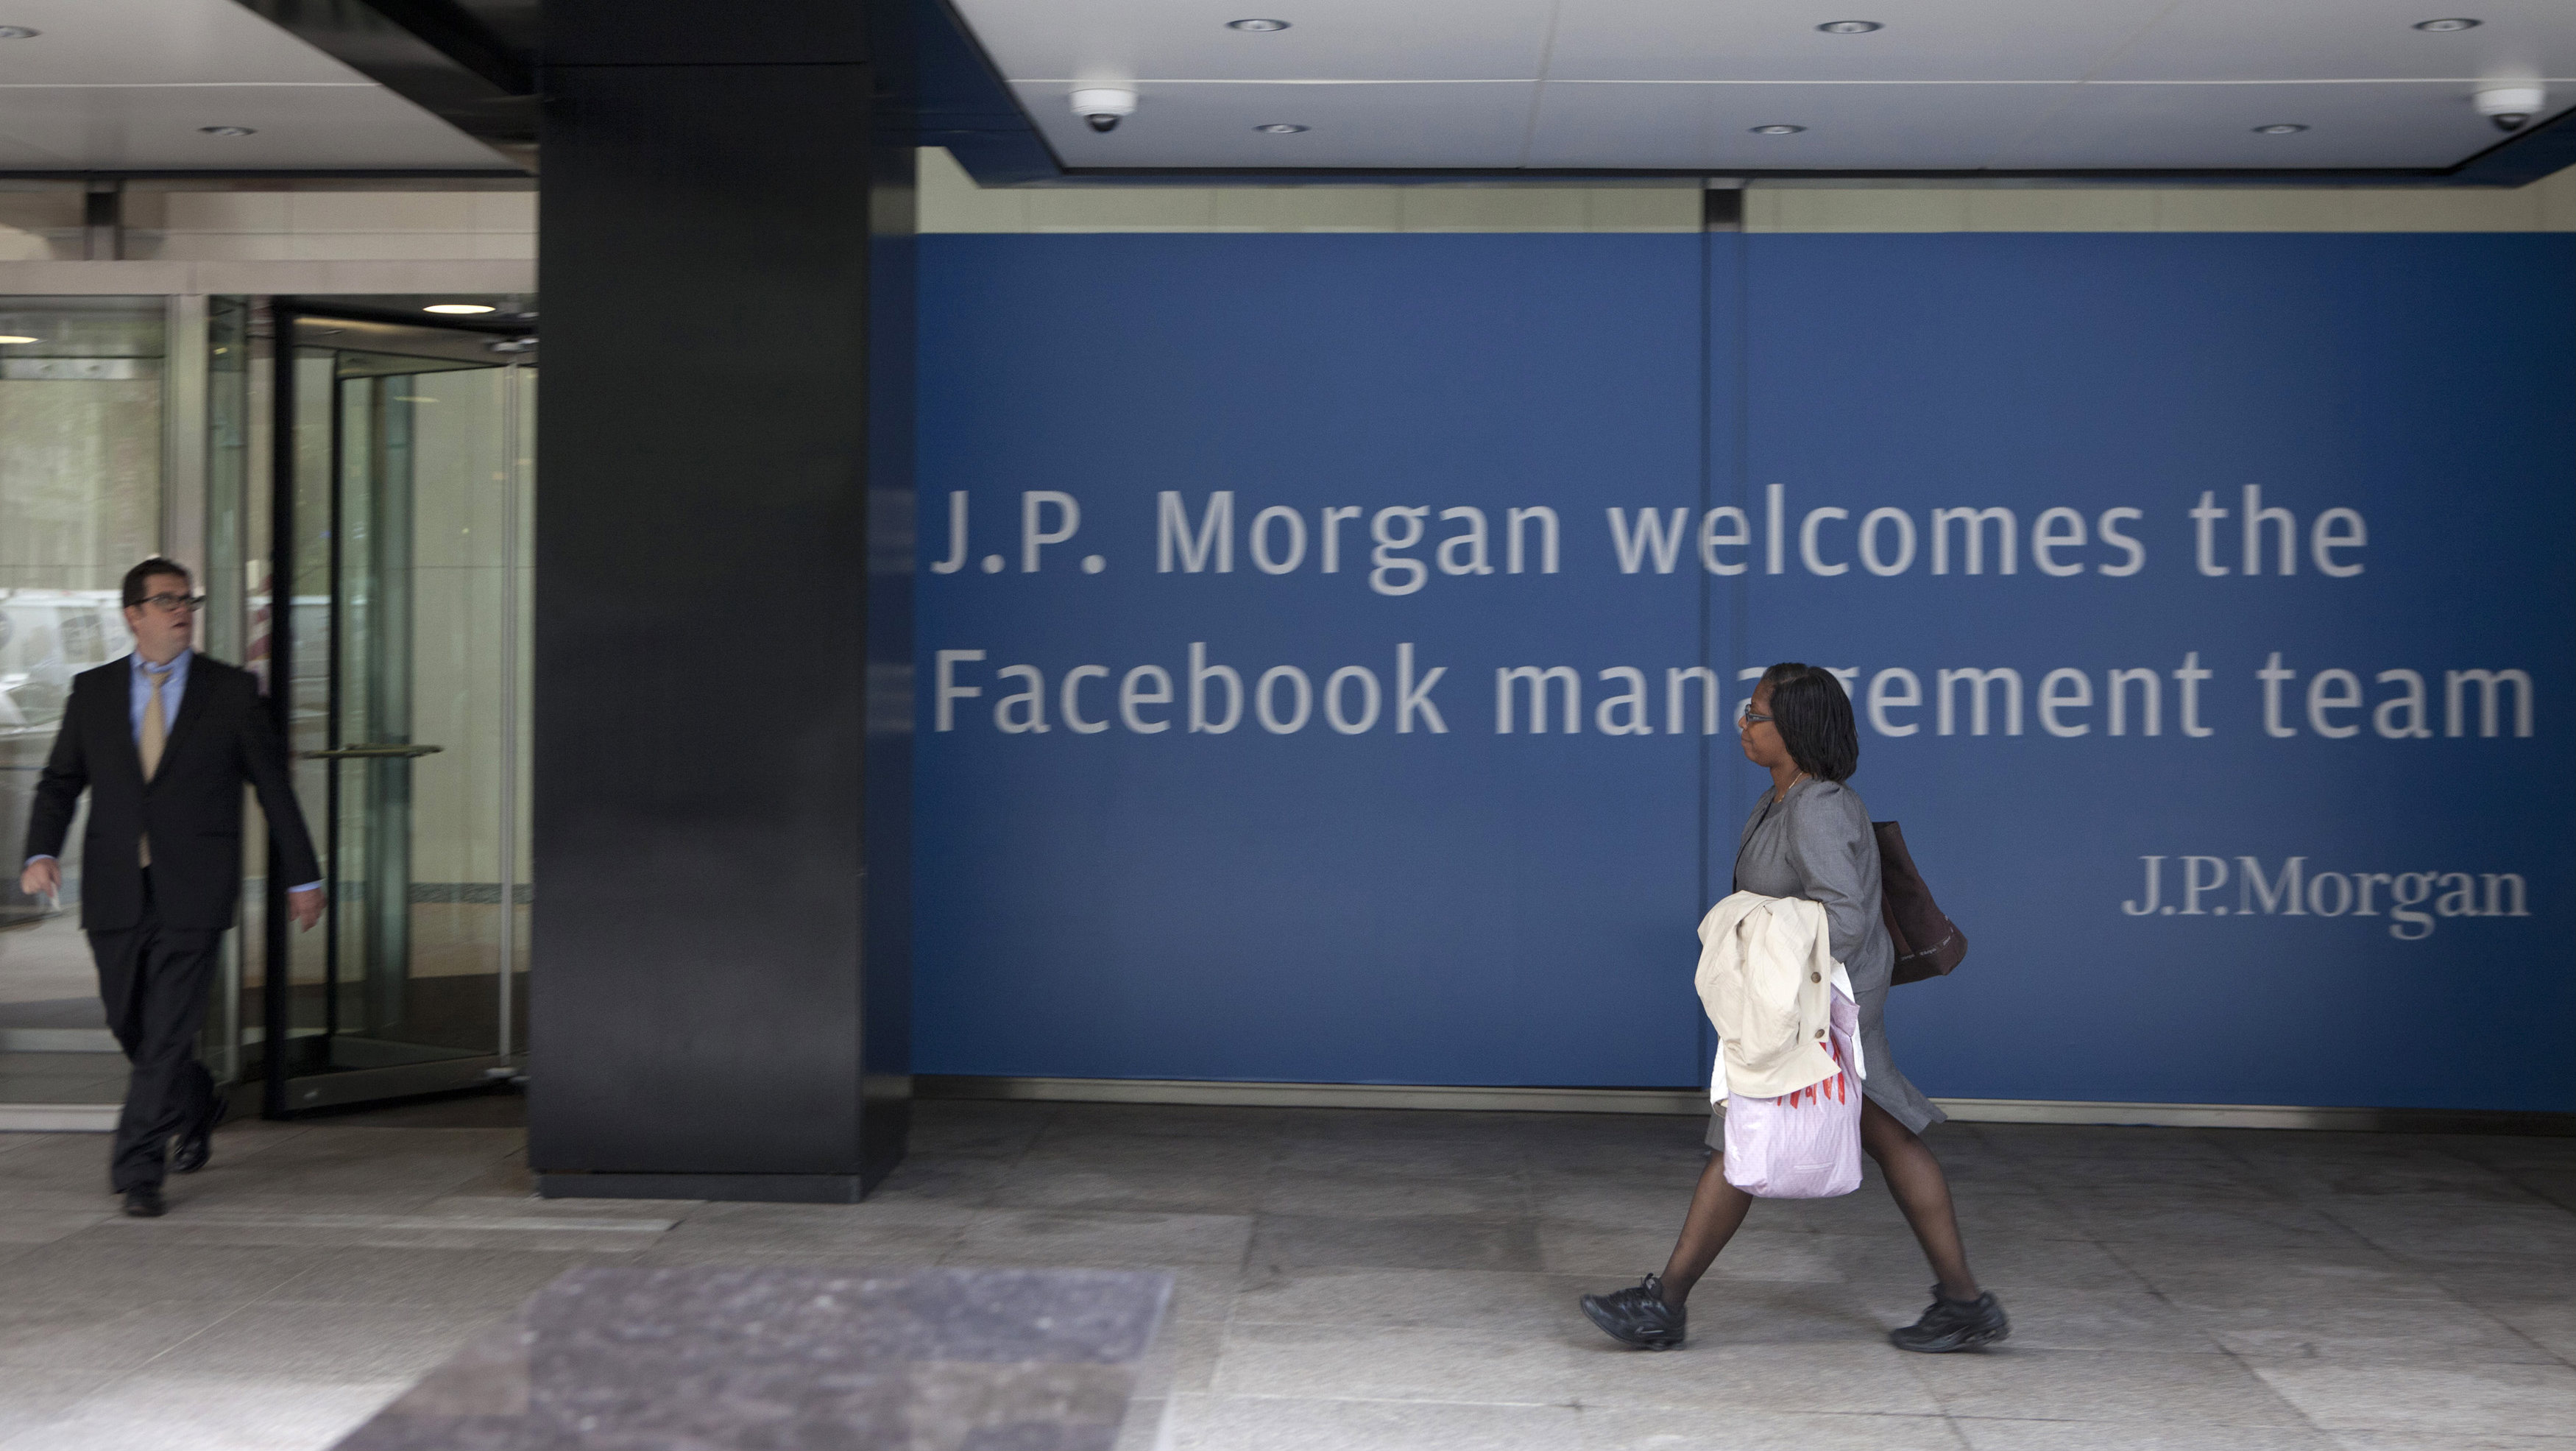 People walk near a sign welcoming the IPO of Facebook outside the offices of J.P. Morgan in New York City, New York, May 4, 2012. Facebook Inc aims to raise about $10.6 billion in Silicon Valley's largest IPO, dwarfing the coming-out parties of tech companies like Google Inc and granting the world's largest social network a market value close to Amazon.com's. REUTERS/Lee Celano